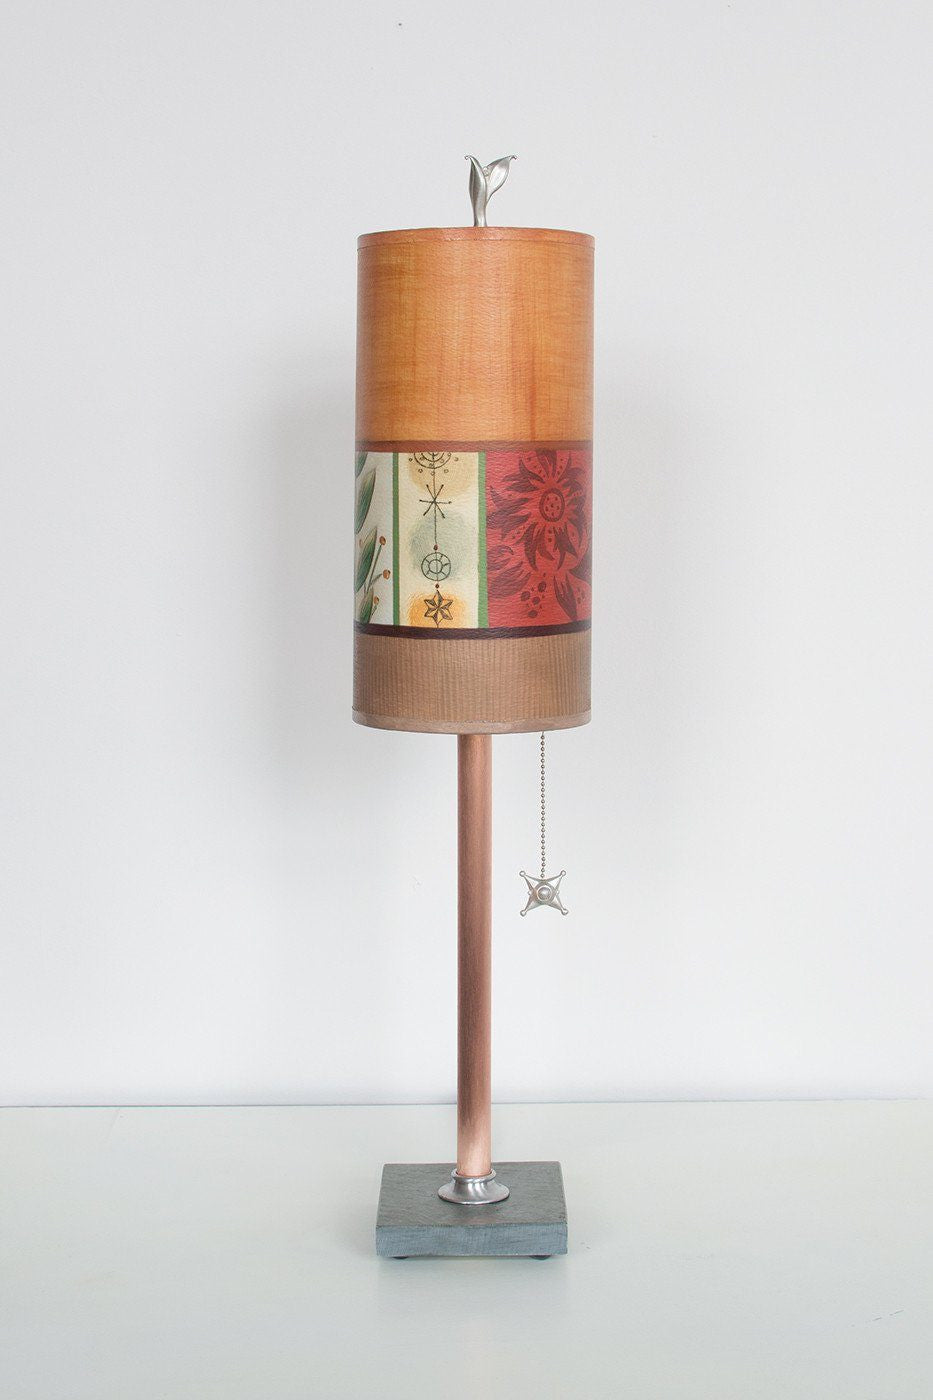 Copper Table Lamp on Vermont Slate with Small Tube Shade in Spring Medley Spice